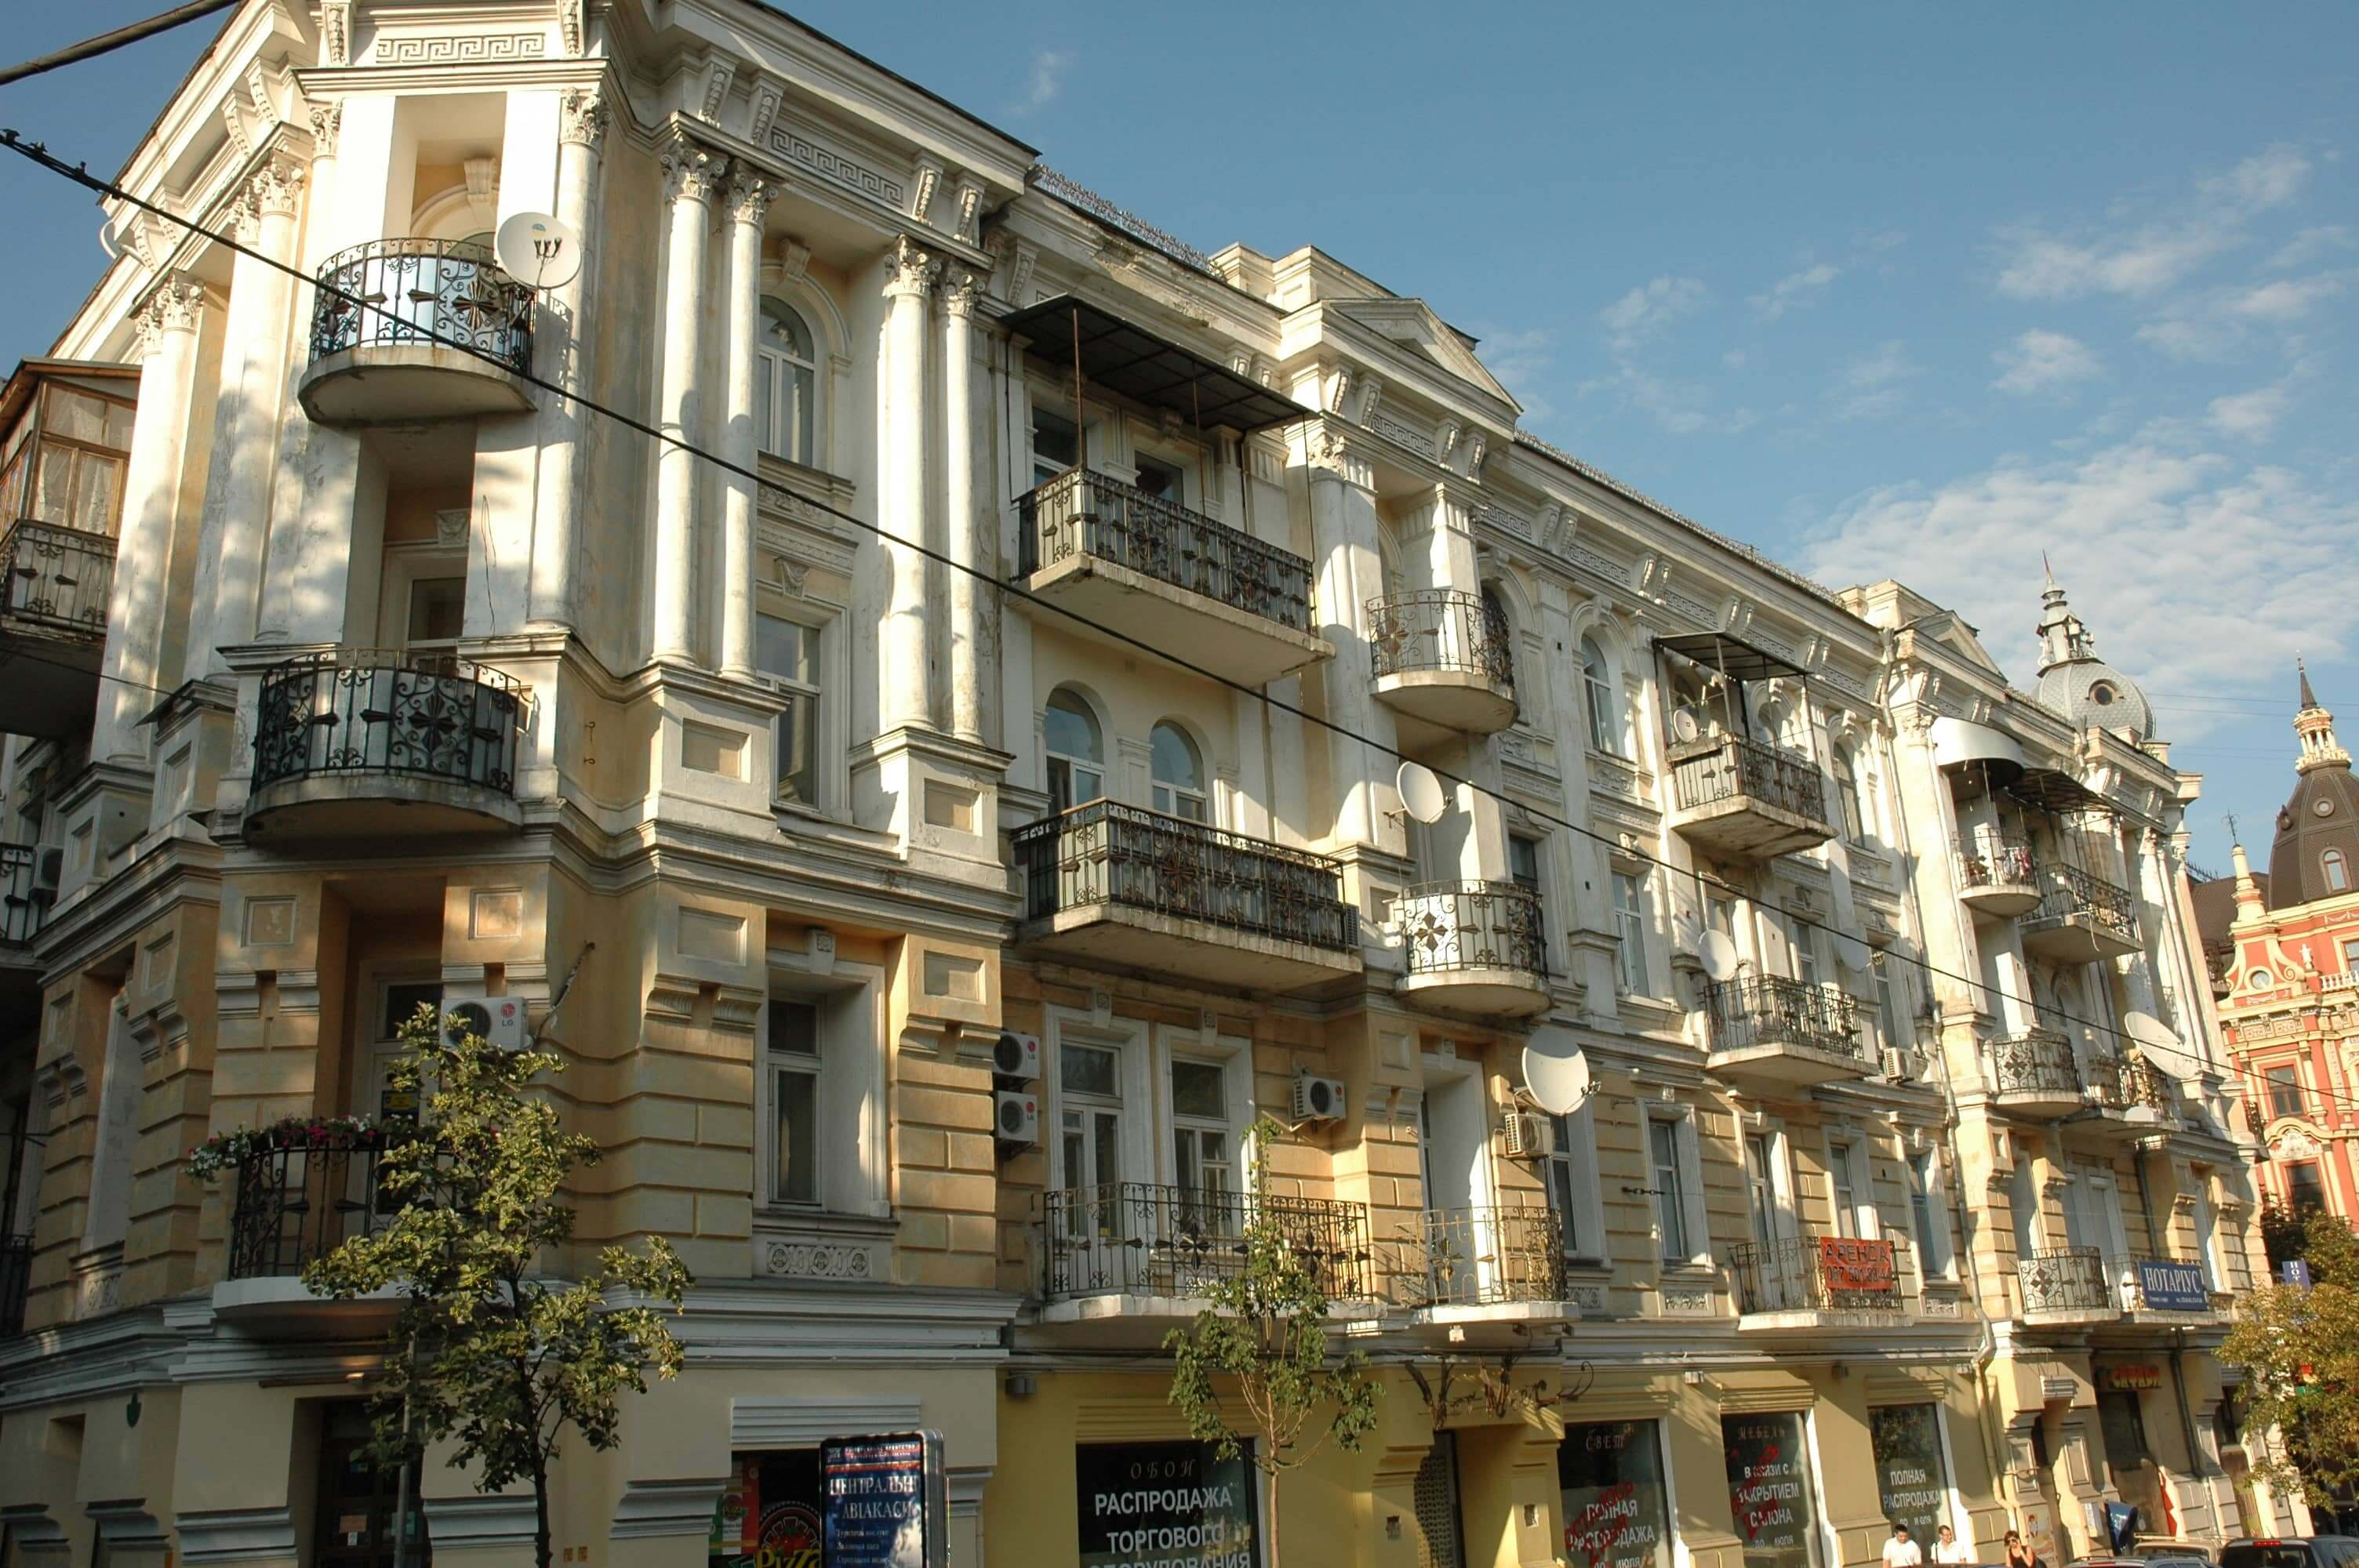 40/2, Volodymyrska Str. – the profitable house of Mikhailov